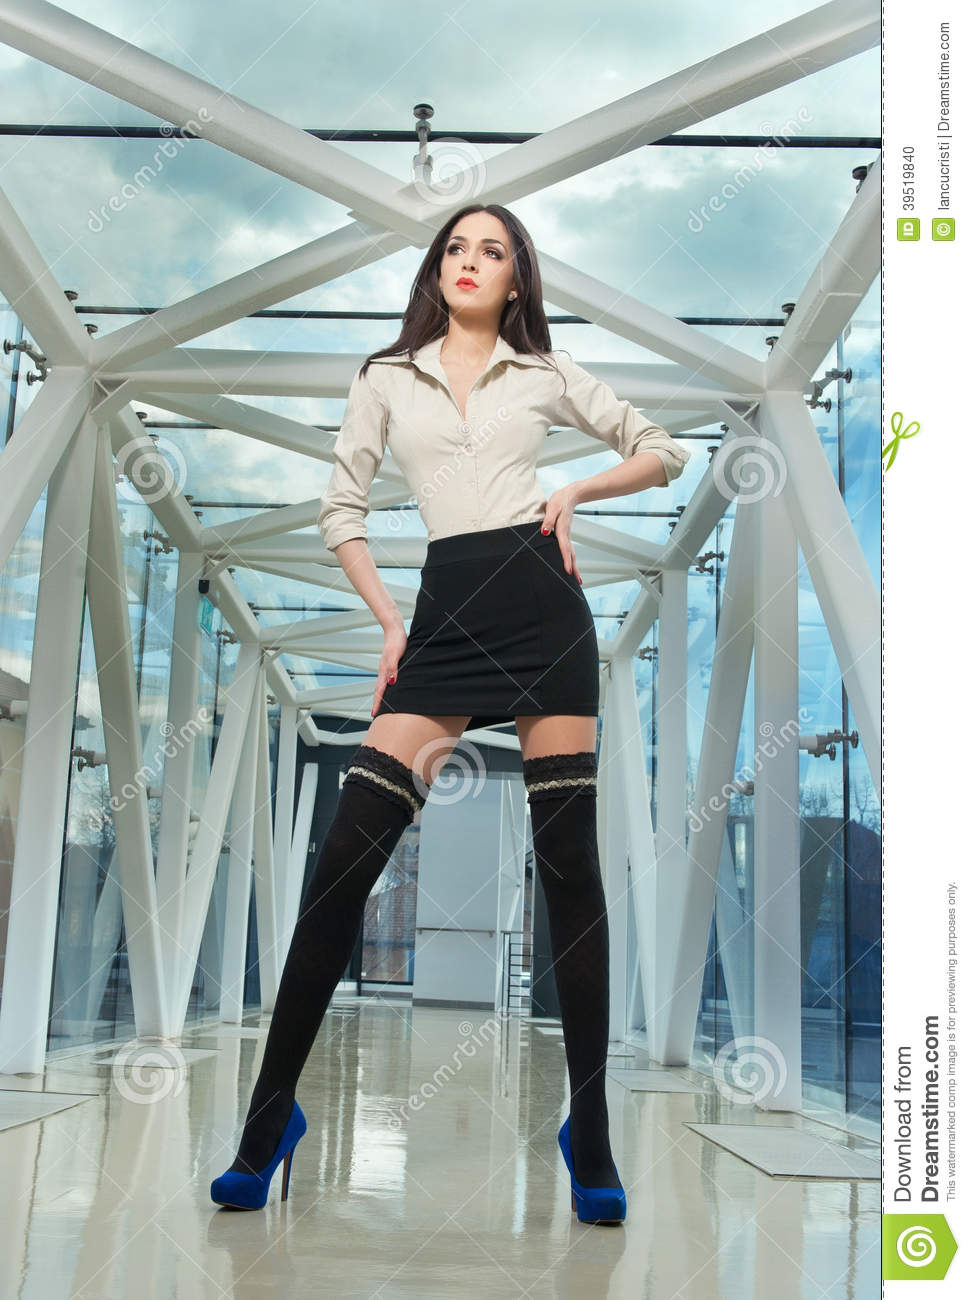 Fashionable Model In Steel And Glass Space Stock Photo - Image 39519840